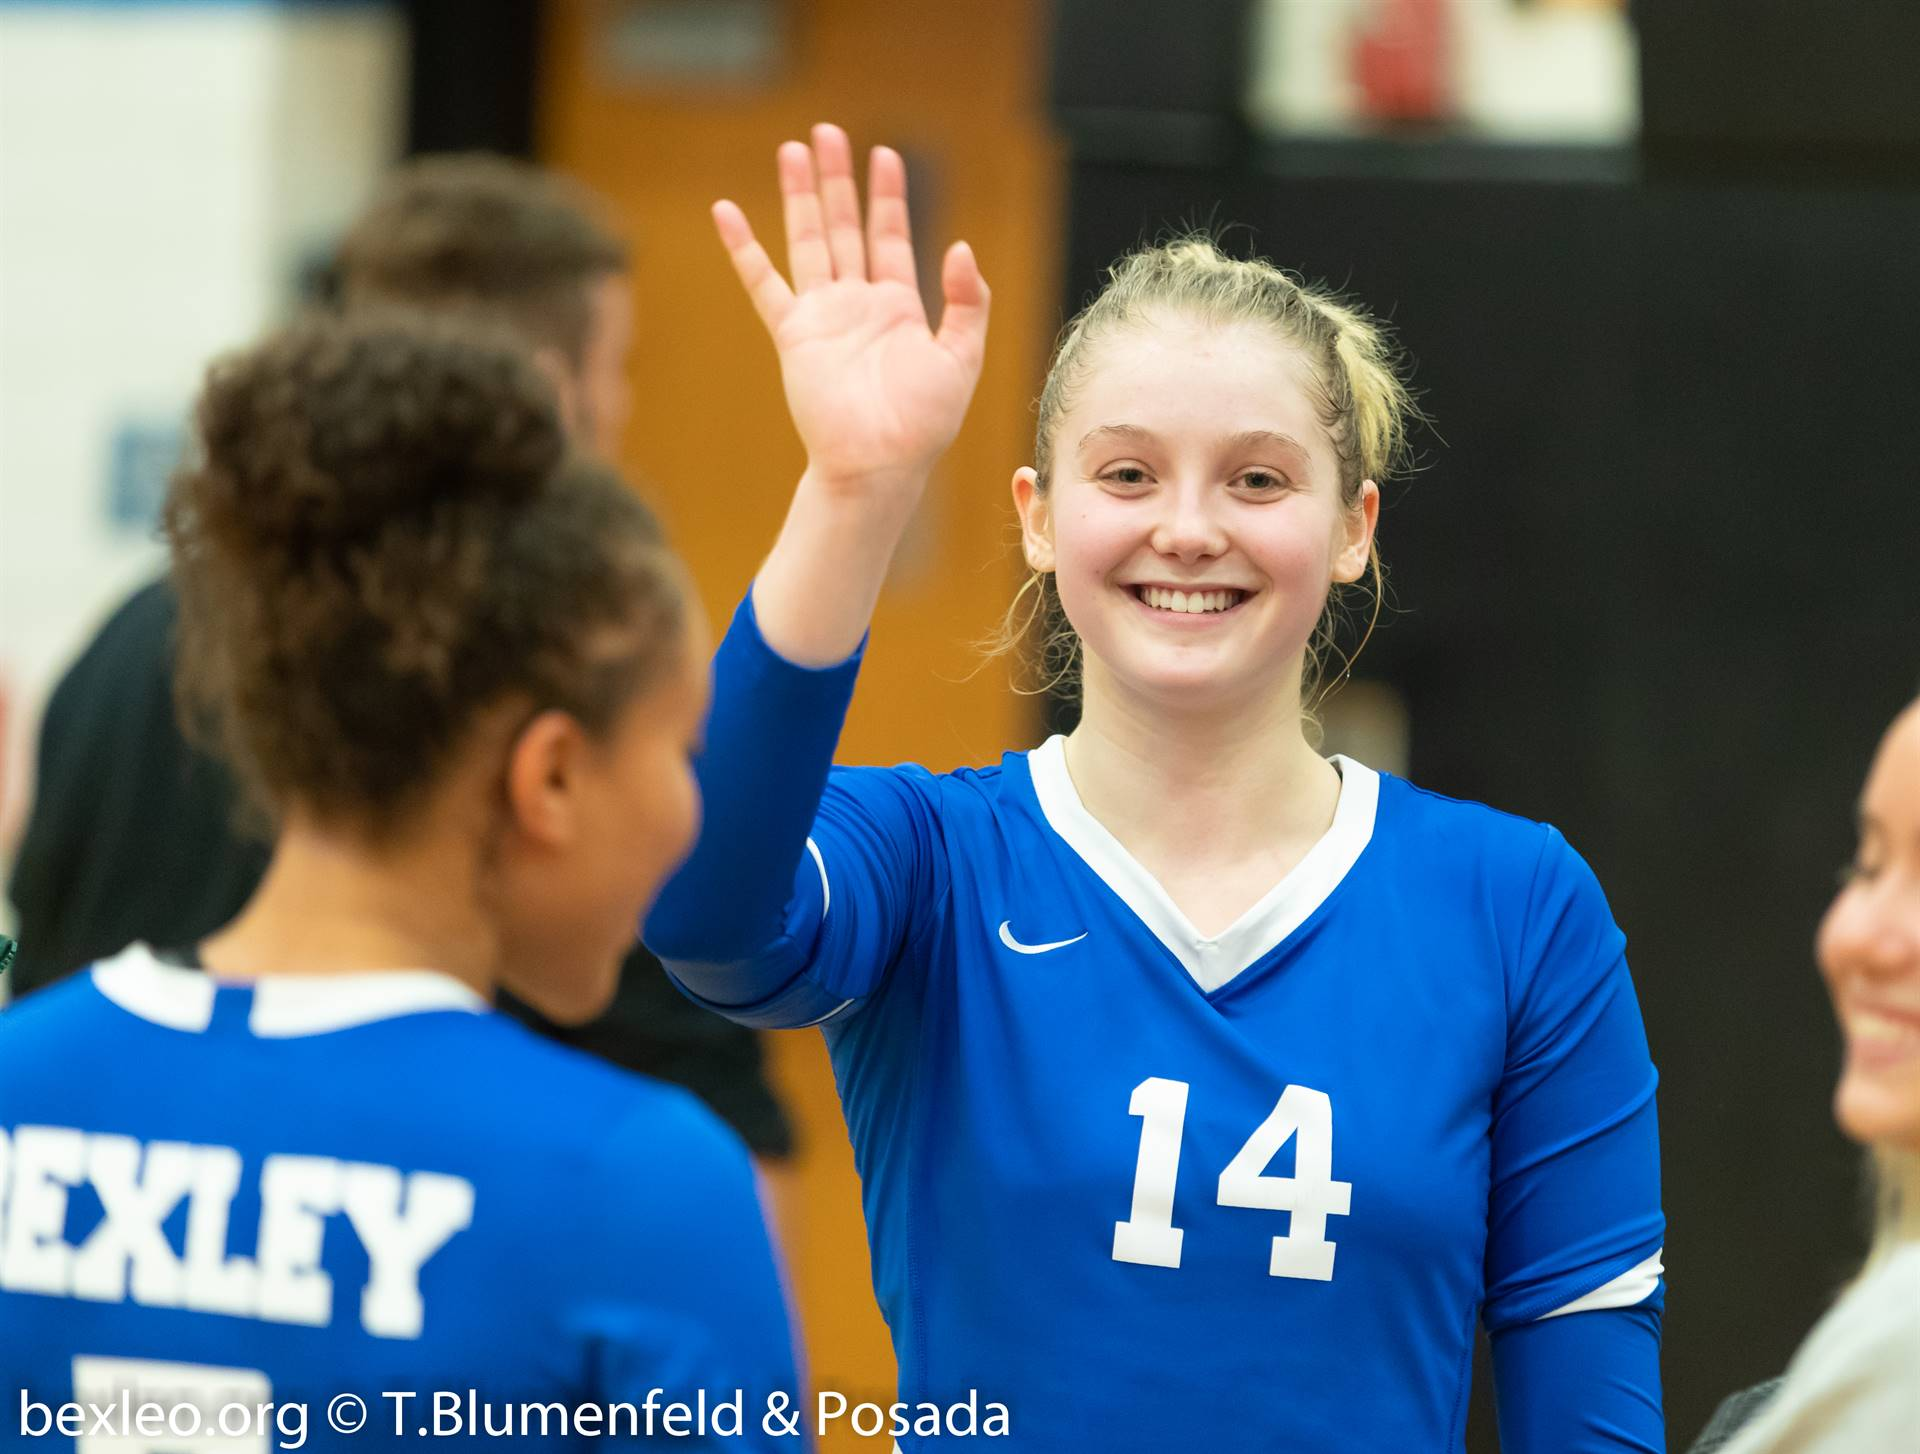 Volleyball ball player waving